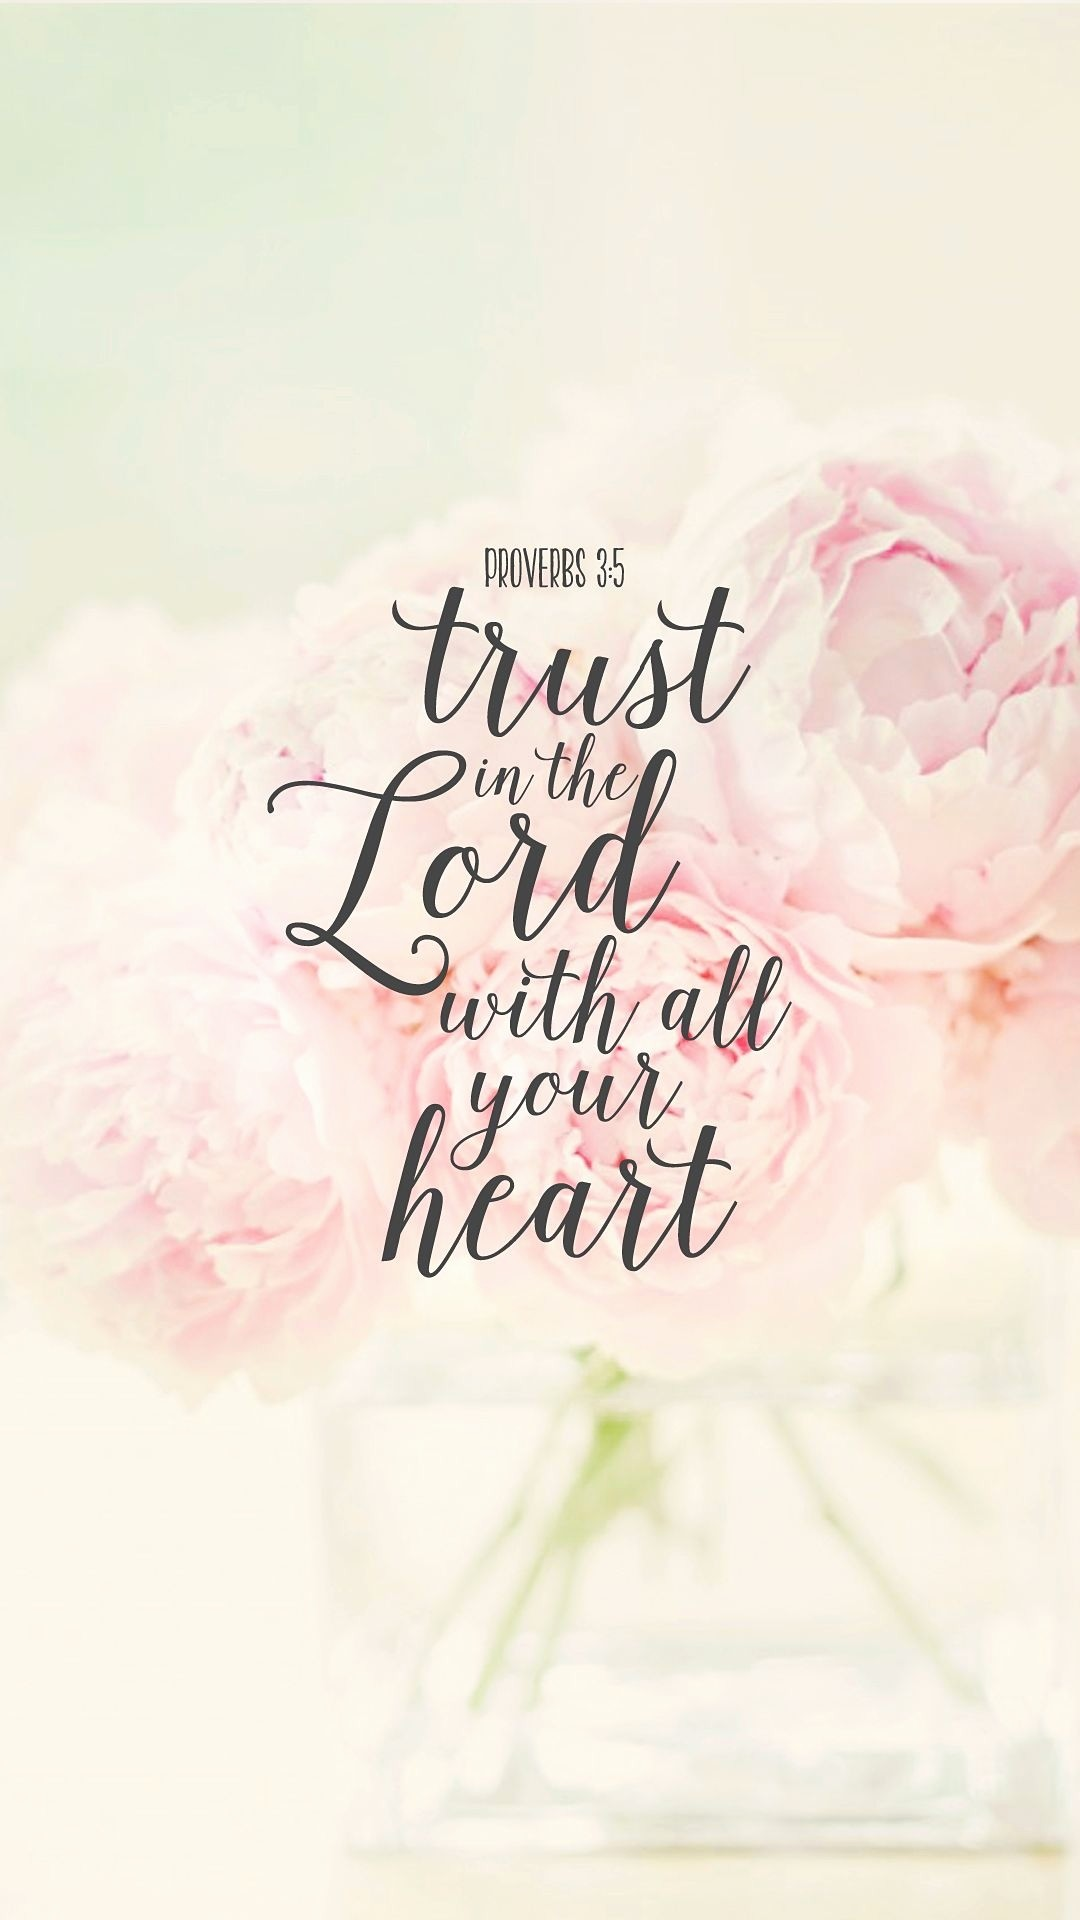 Bible Verse Wallpapers 51 Images